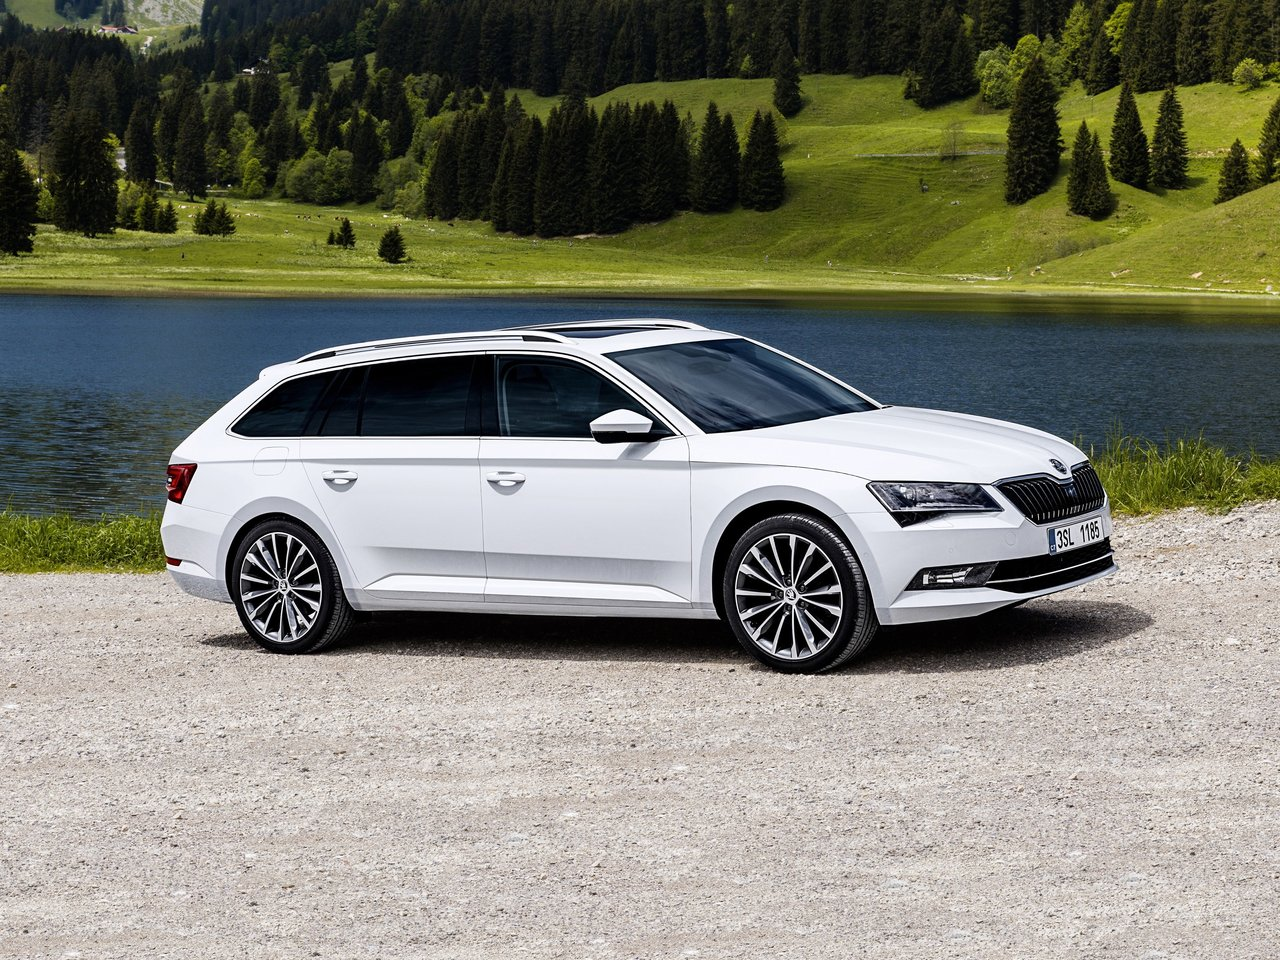 skoda superb iii combi 1 4 tsi 150 hp. Black Bedroom Furniture Sets. Home Design Ideas